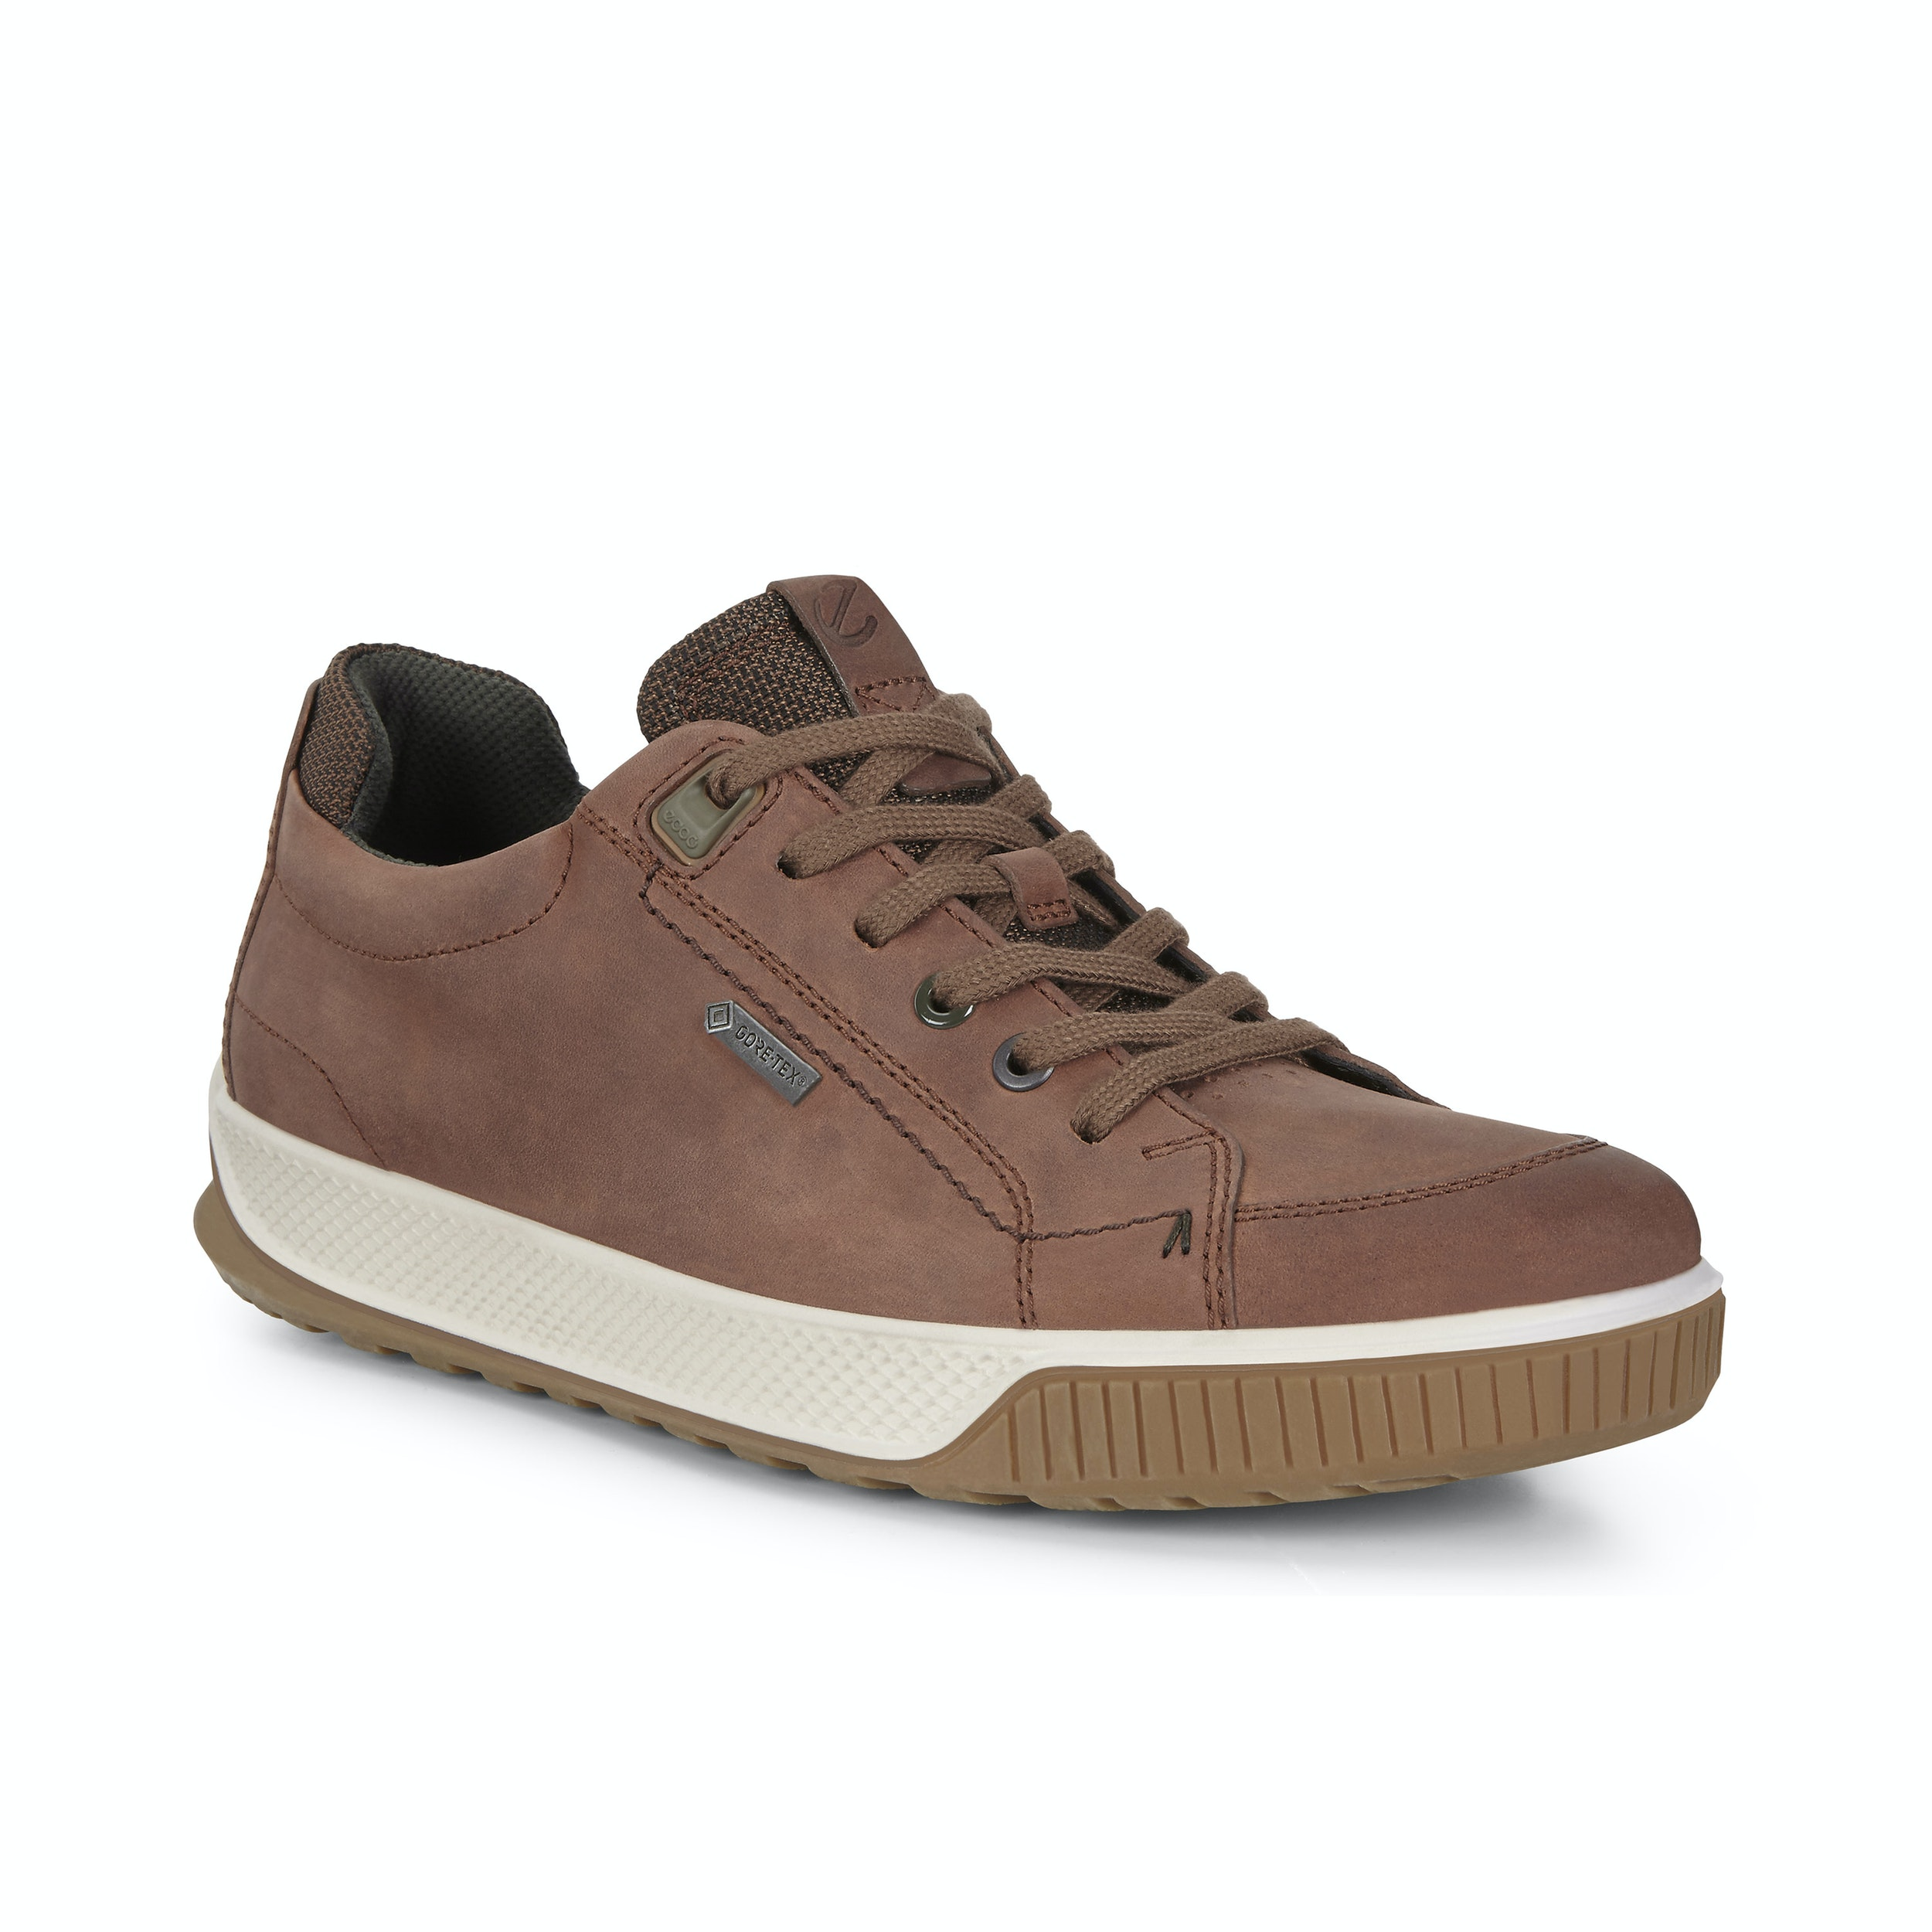 29897a5c Men's ECCO Byway Tred GTX - Contemporary leather trainers with Gore ...